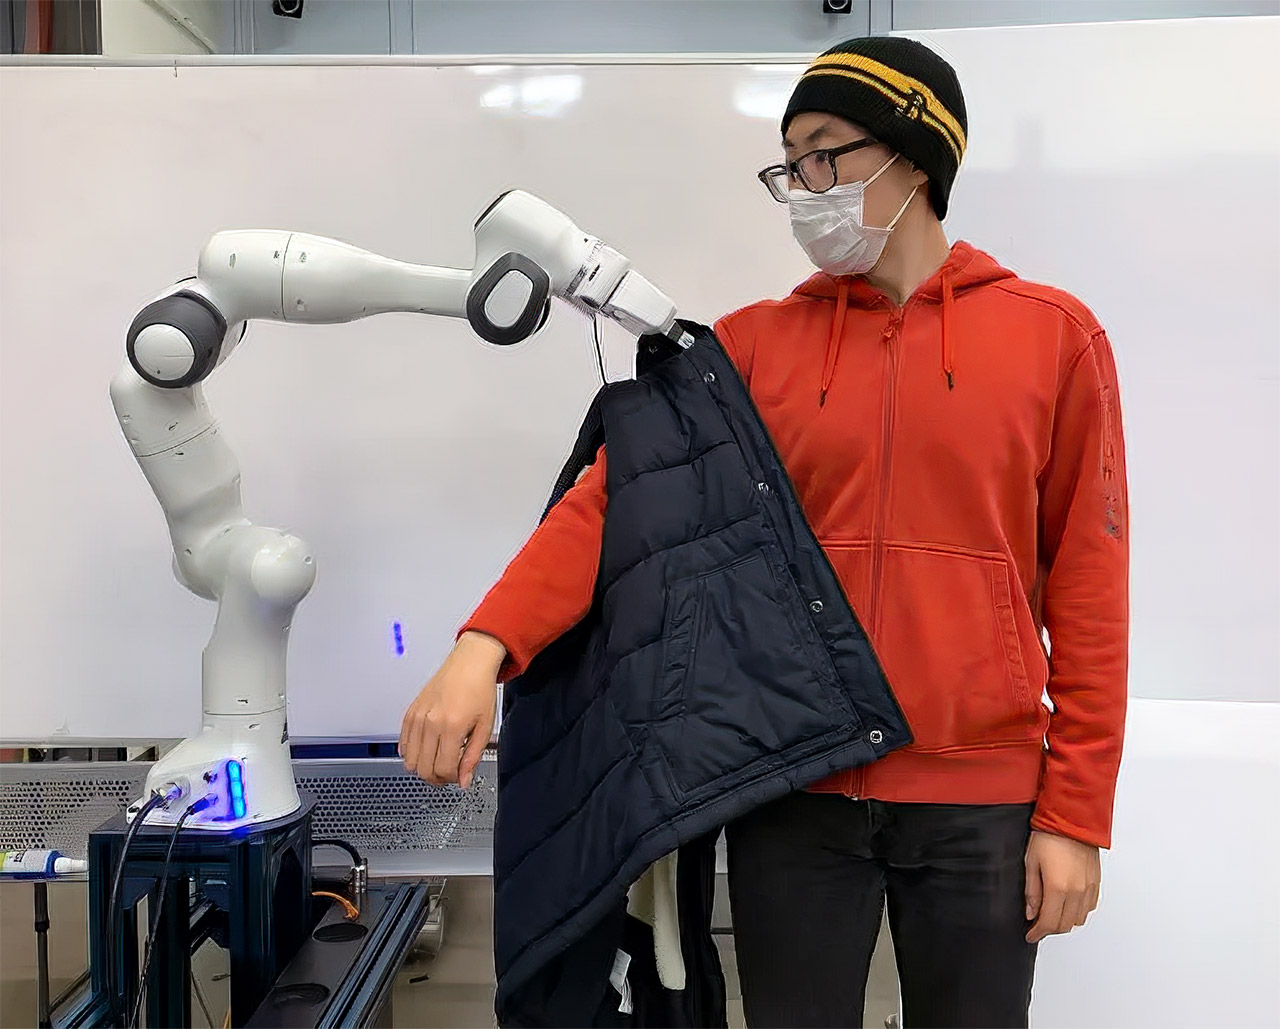 MIT Robot Dressed Limited Mobility